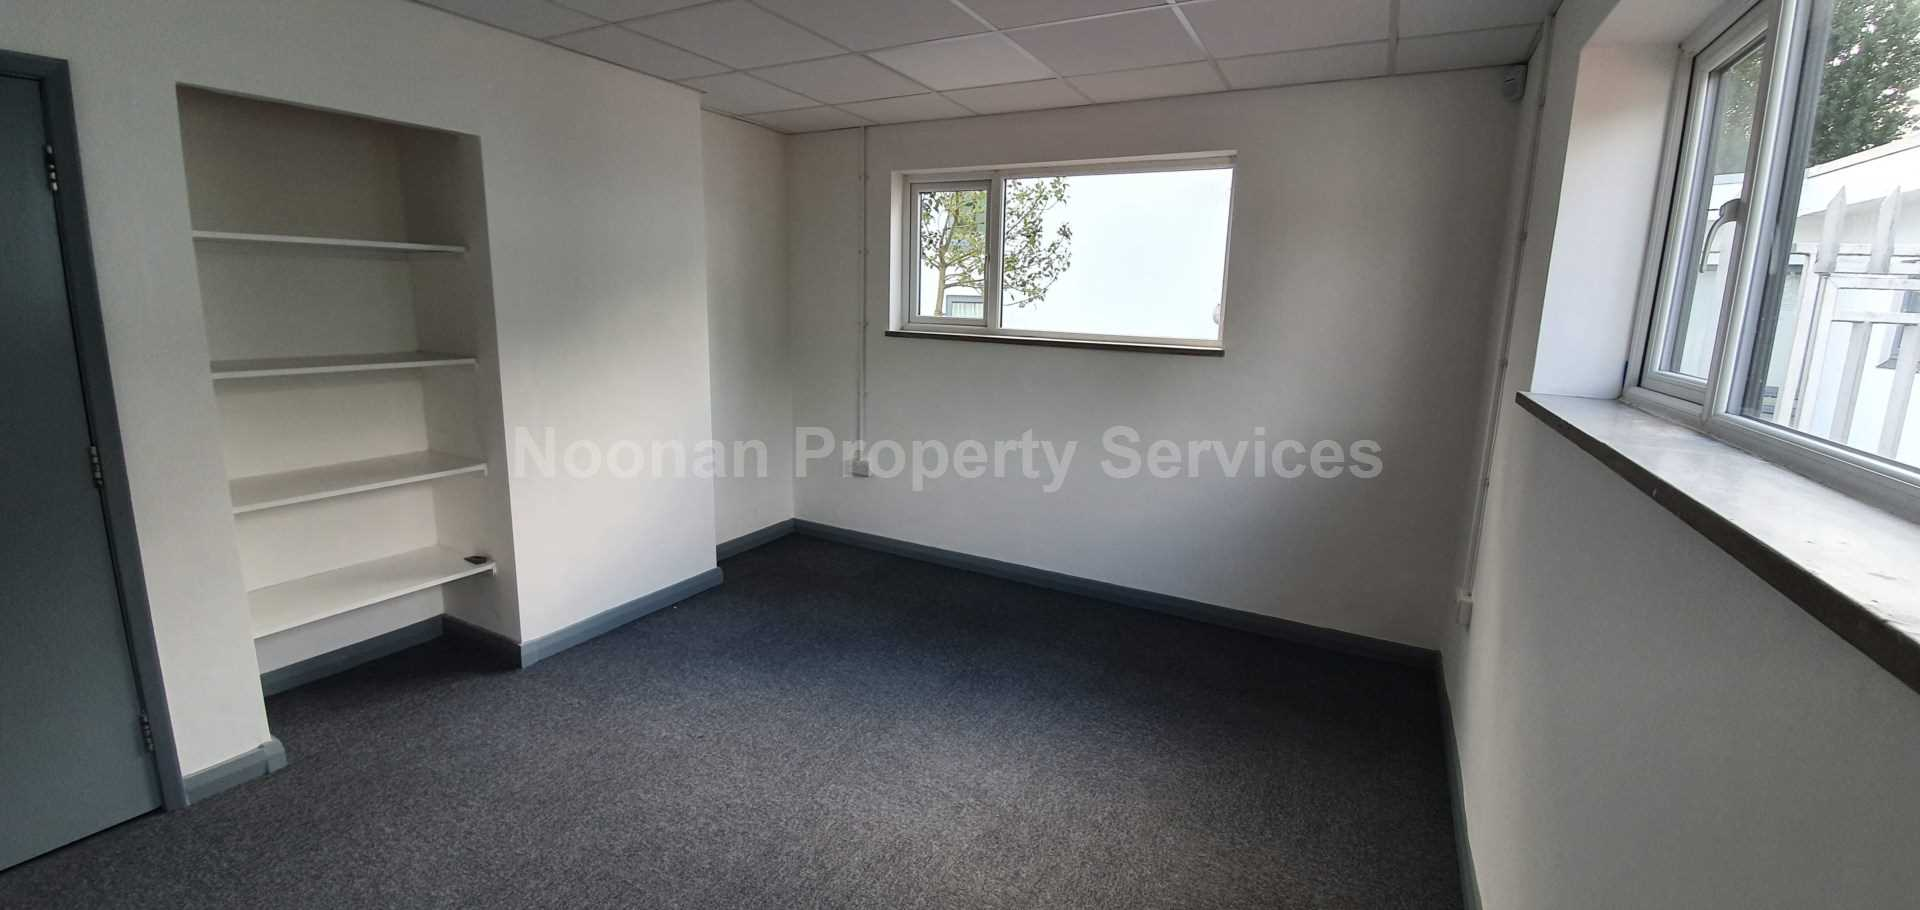 Almond Road, St Neots, Image 2